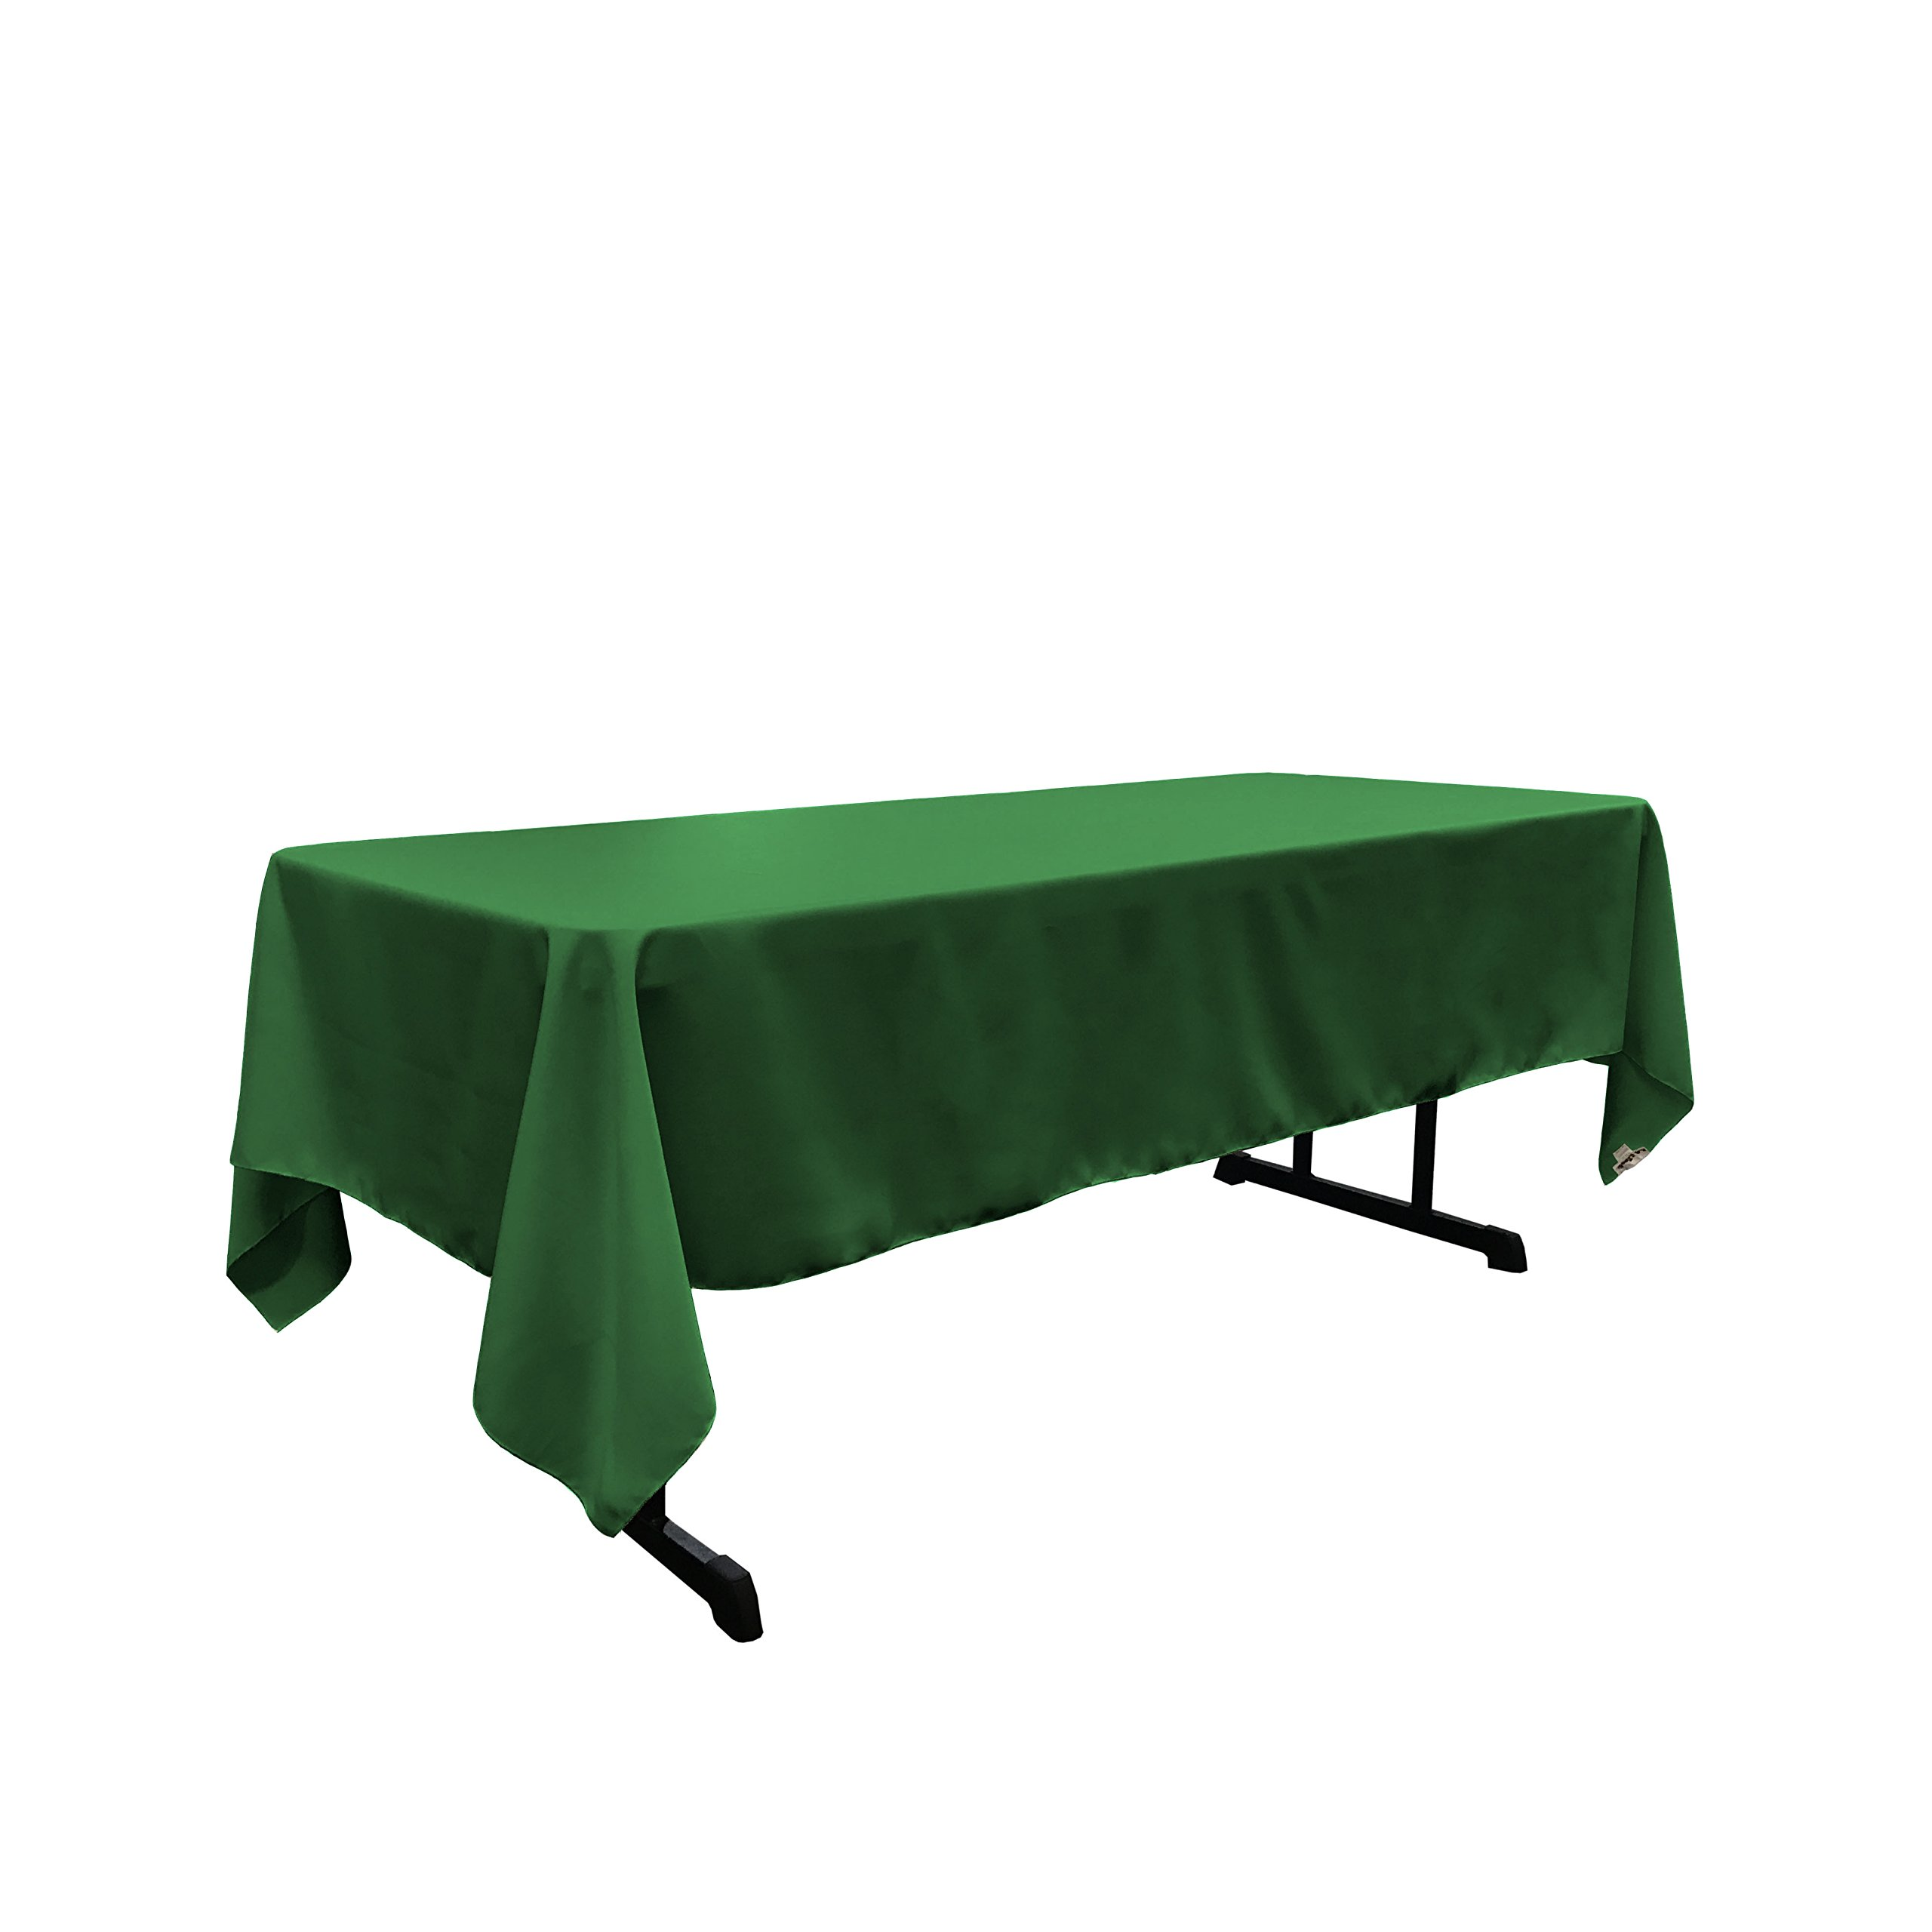 LA Linen Polyester Poplin 60 by 108'' Rectangular Tablecloth, Emerald Green